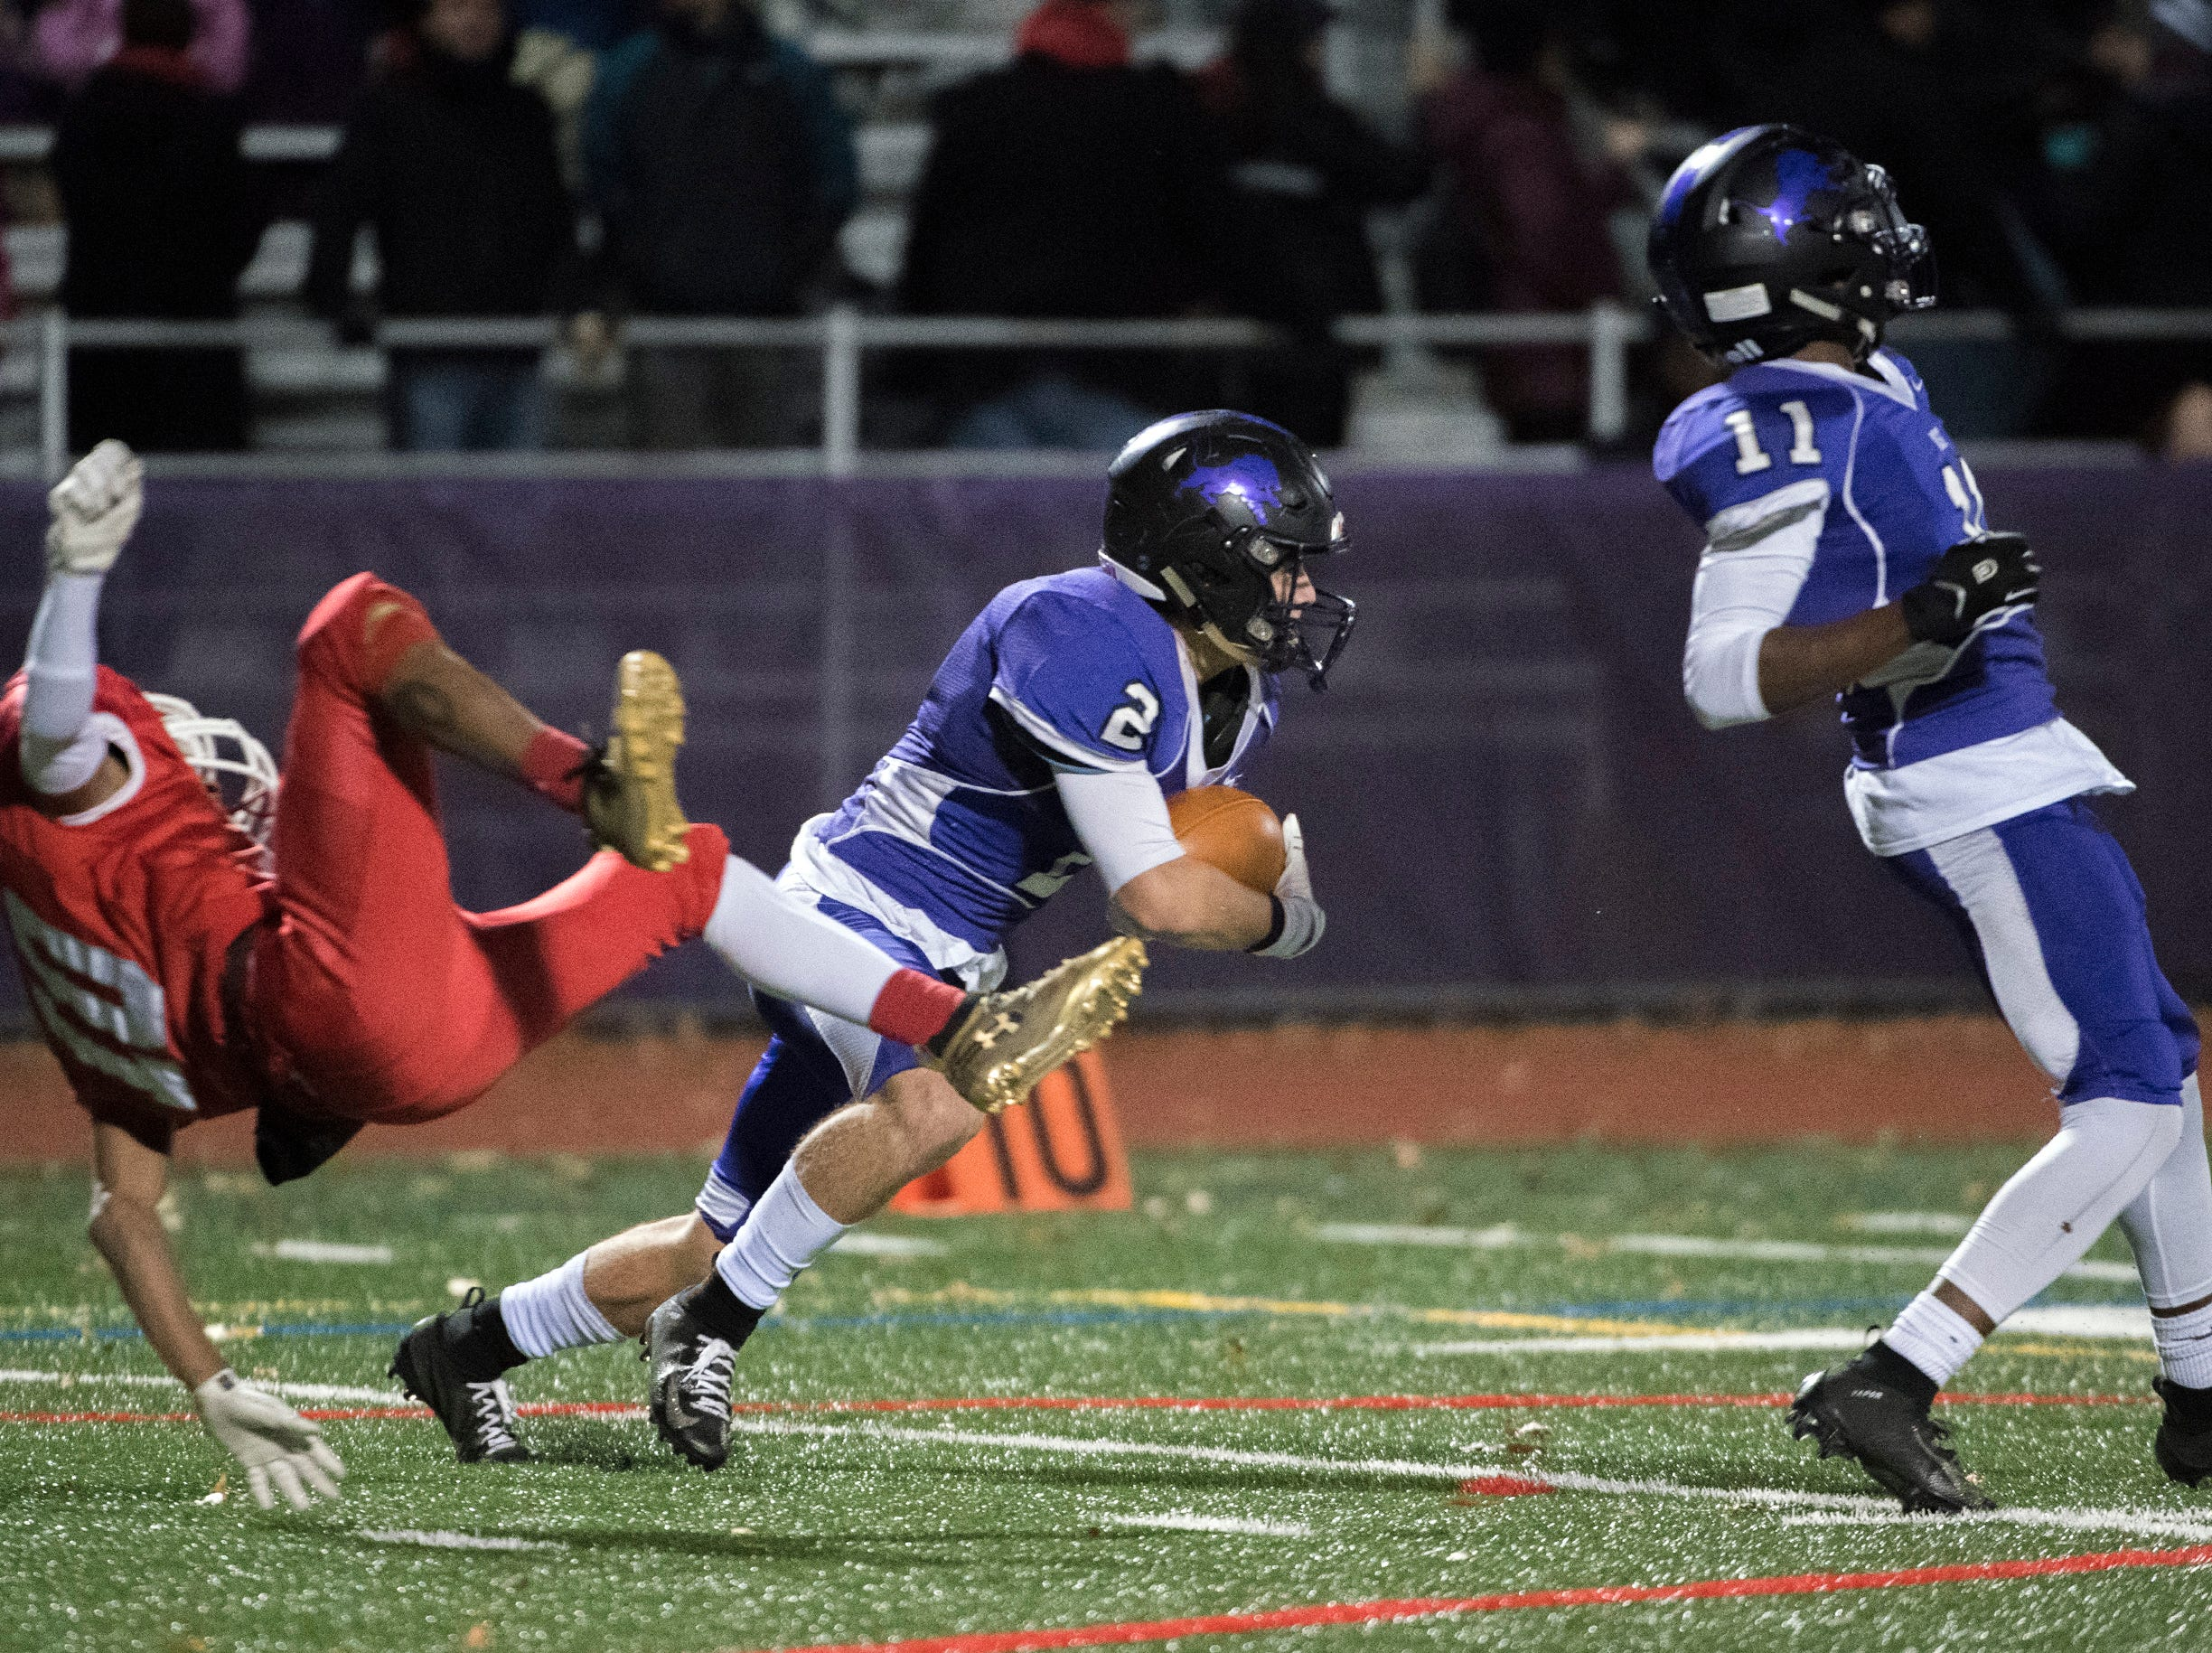 West's Johnny Ioannucci (2) intercepts the ball during an annual East-West game Wednesday, Nov. 21, 2018 at Cherry Hill West High School in Cherry Hill, N.J. West won 22-7.